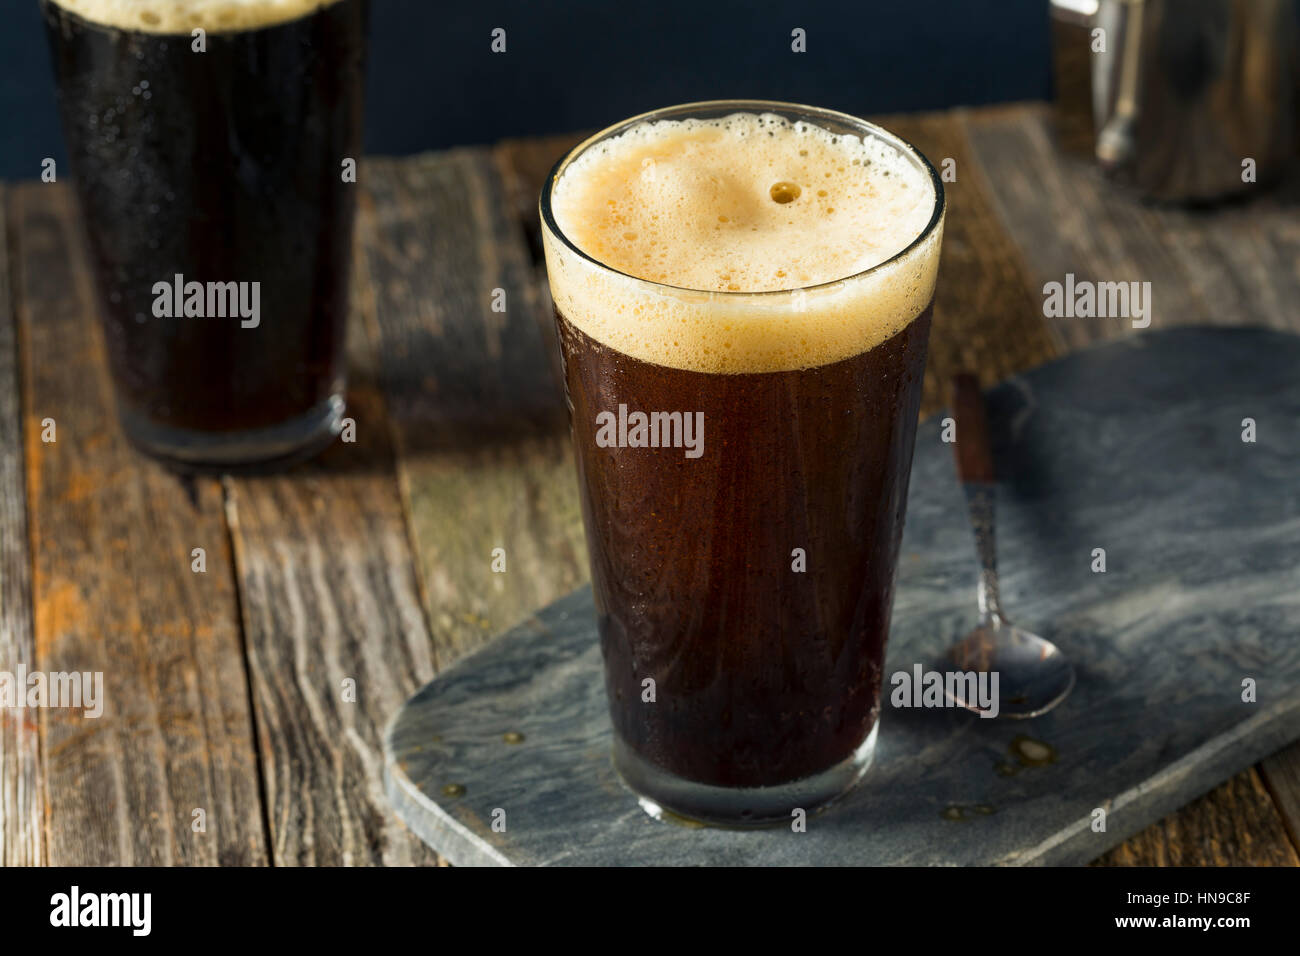 Frothy Nitro Cold Brew Coffee Ready to Drink - Stock Image